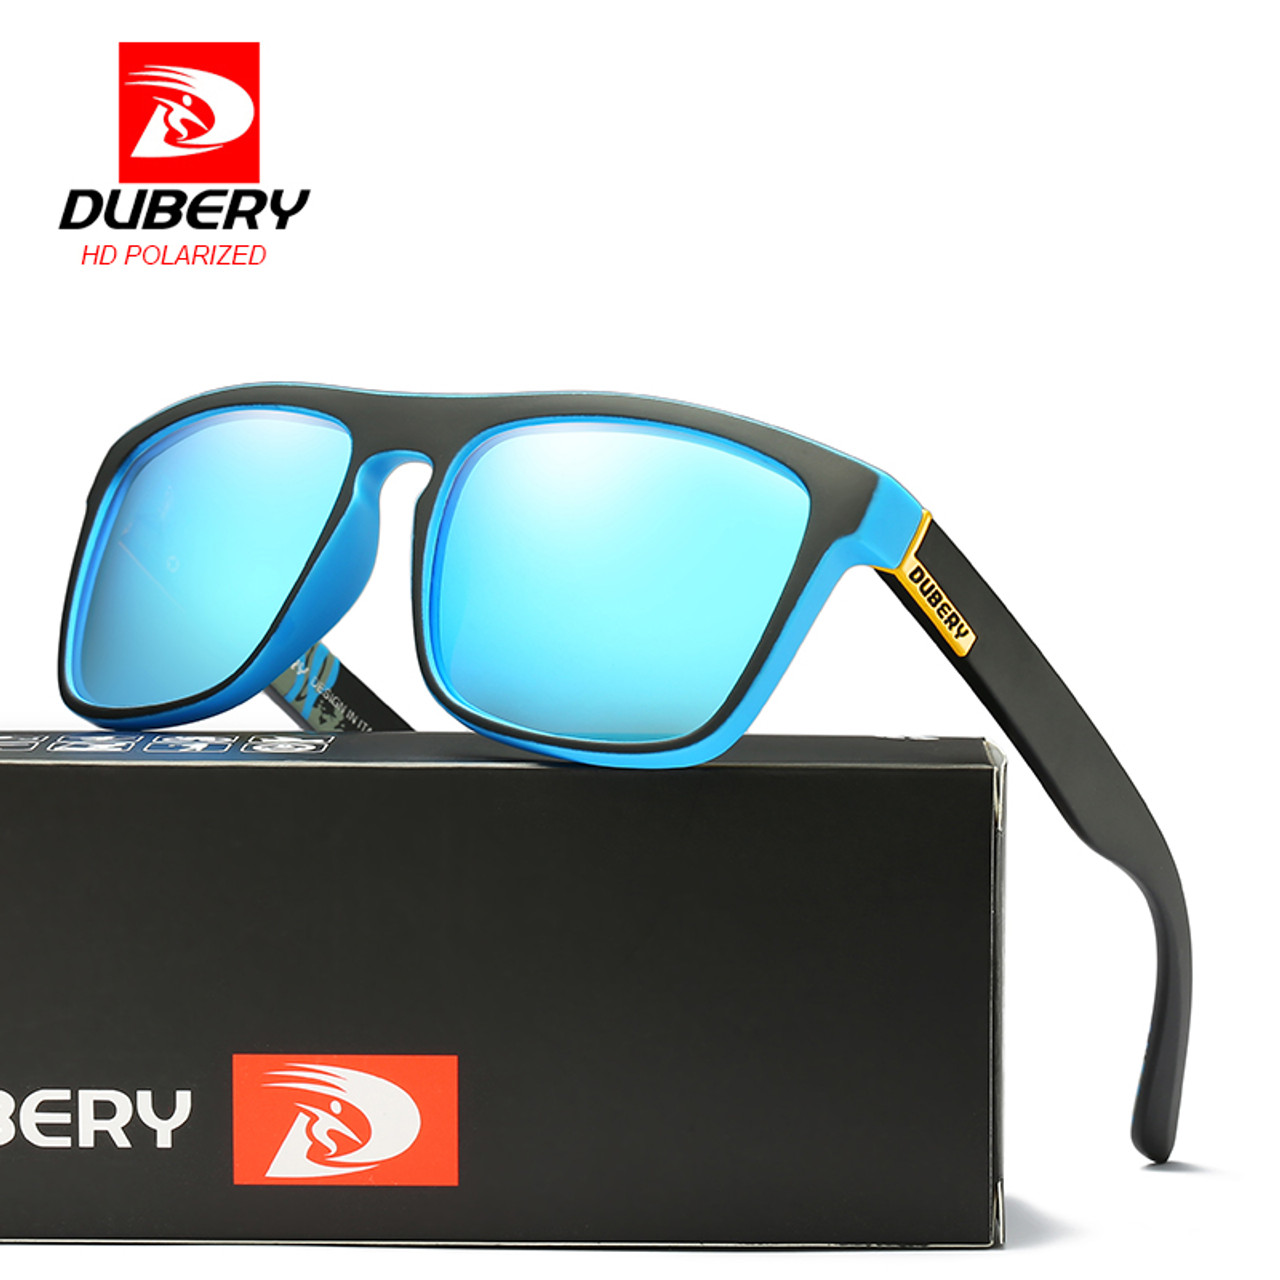 b7b20a7099 DUBERY 2018 Polarized Sunglasses Men s Aviation Driving Shades Male Sun  Glasses For Men Retro Cheap Luxury ...